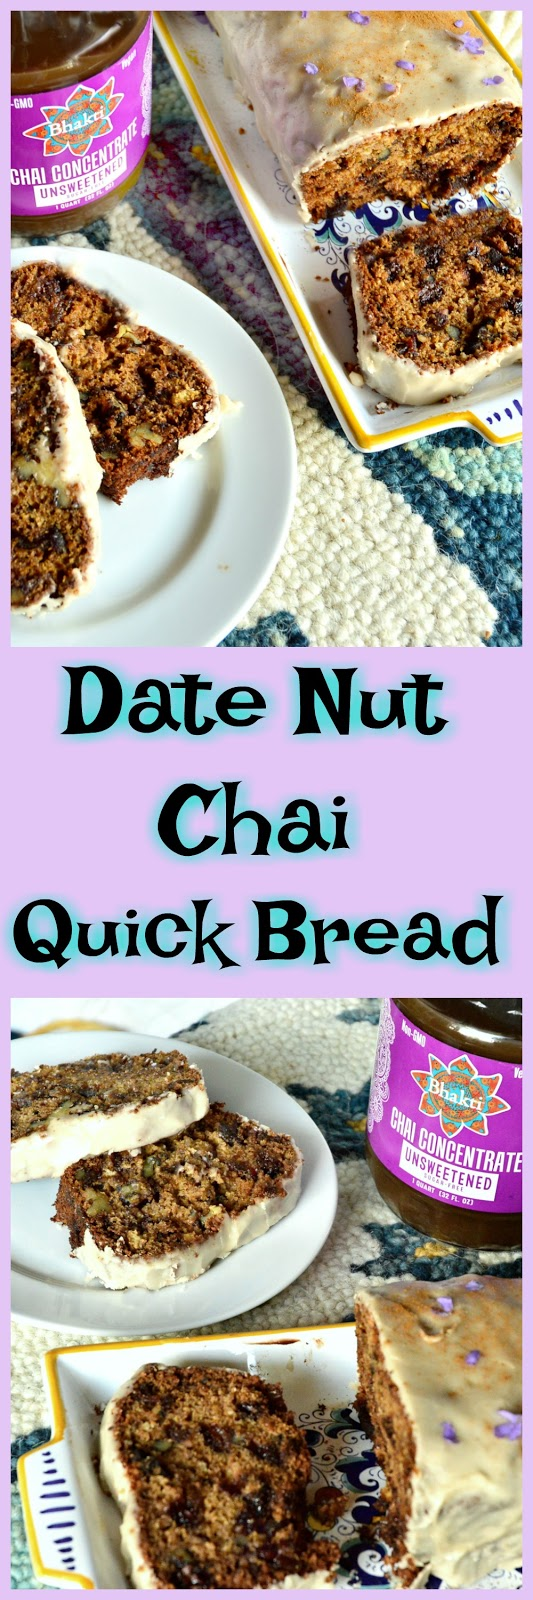 This date nut chai bread, studded with walnuts, dates and dark chocolate is also full of the intoxicating flavors of gingery chai. Consider yourself enlightened by this chai bread. Perfect served with your favorite cup of chai! www.thisishowicook.com